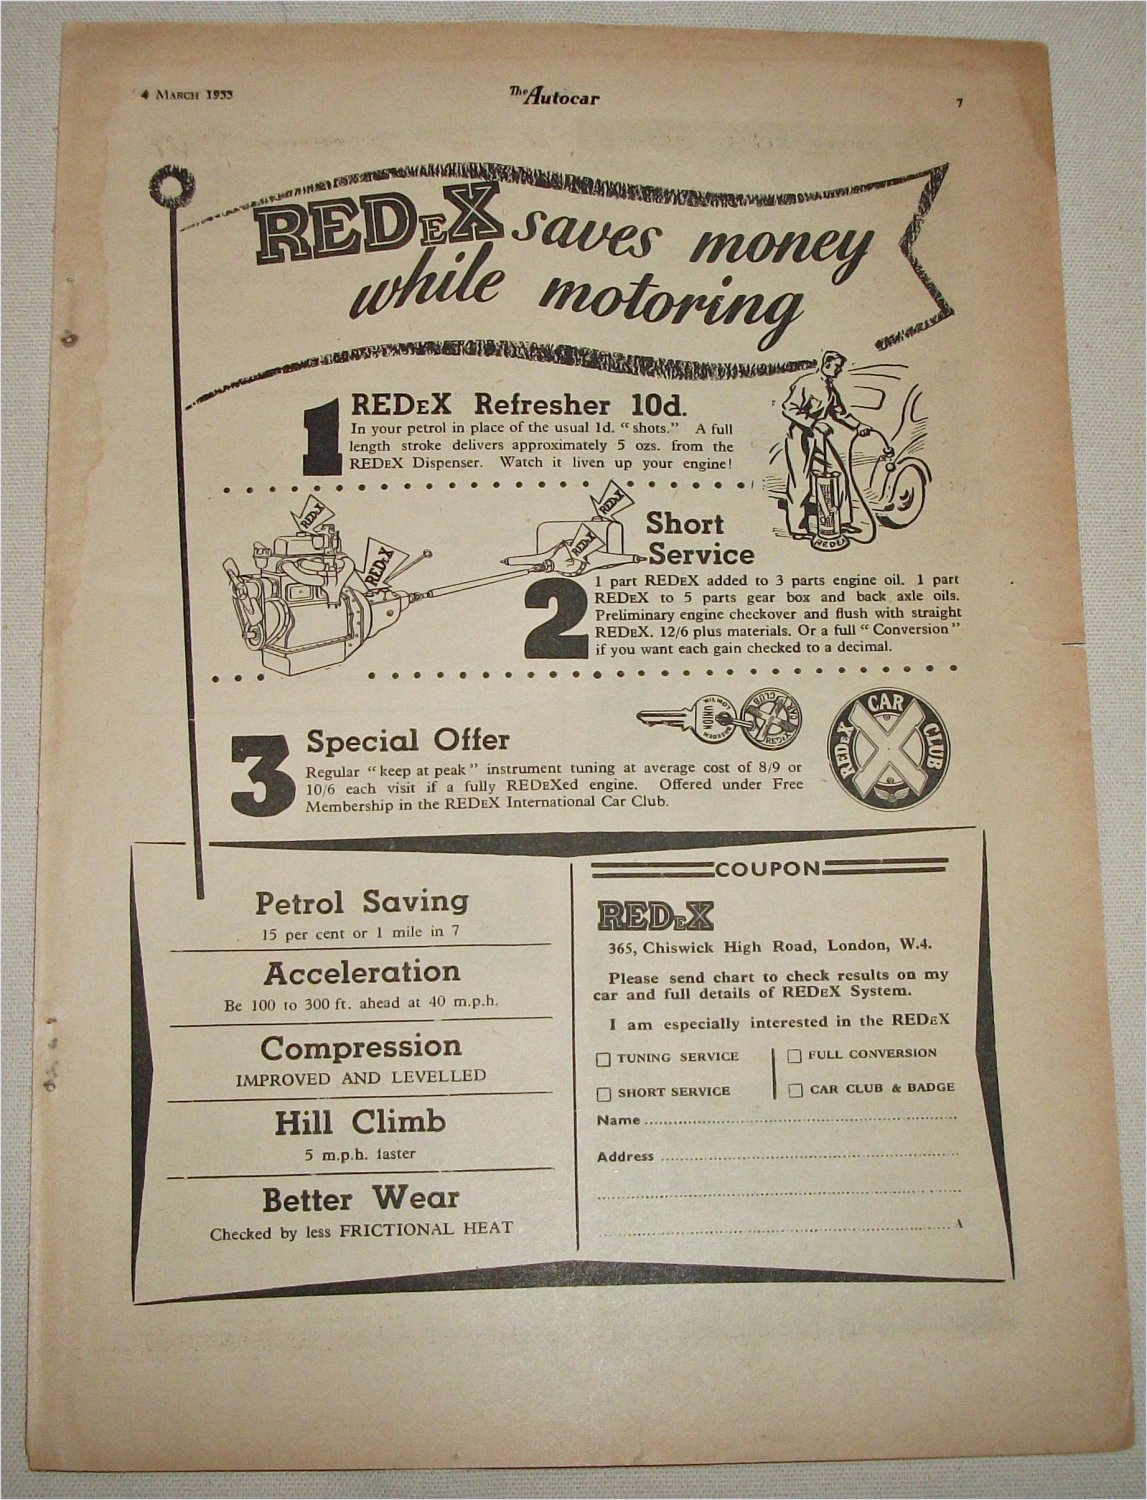 1955 RedeX Refresher ad from the UK